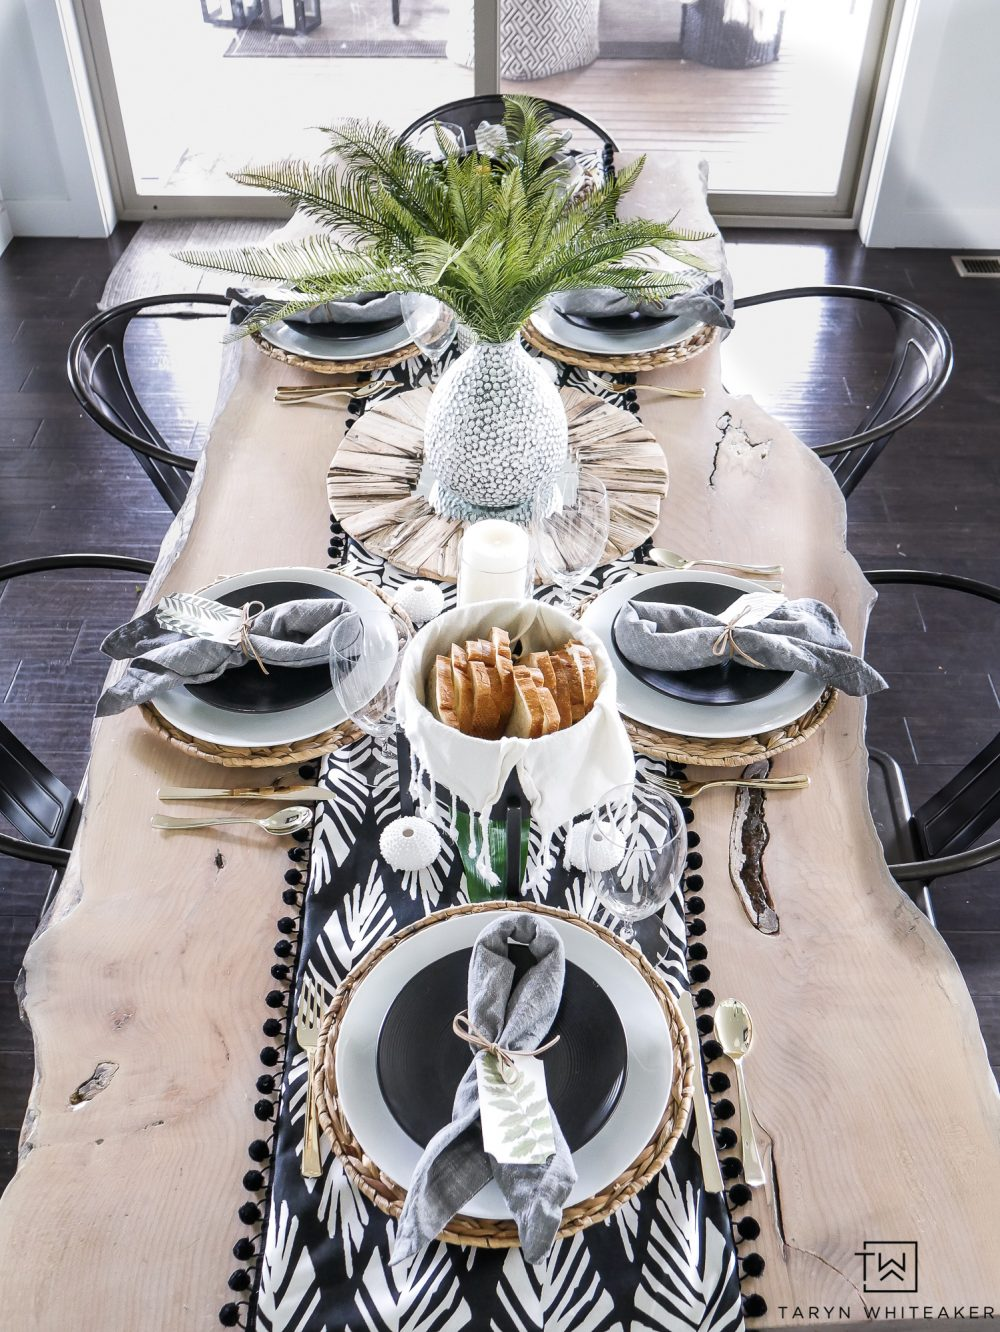 Black and white tropical dinner party decor complete with a DIY boho table runner and pops of tropical leaves.